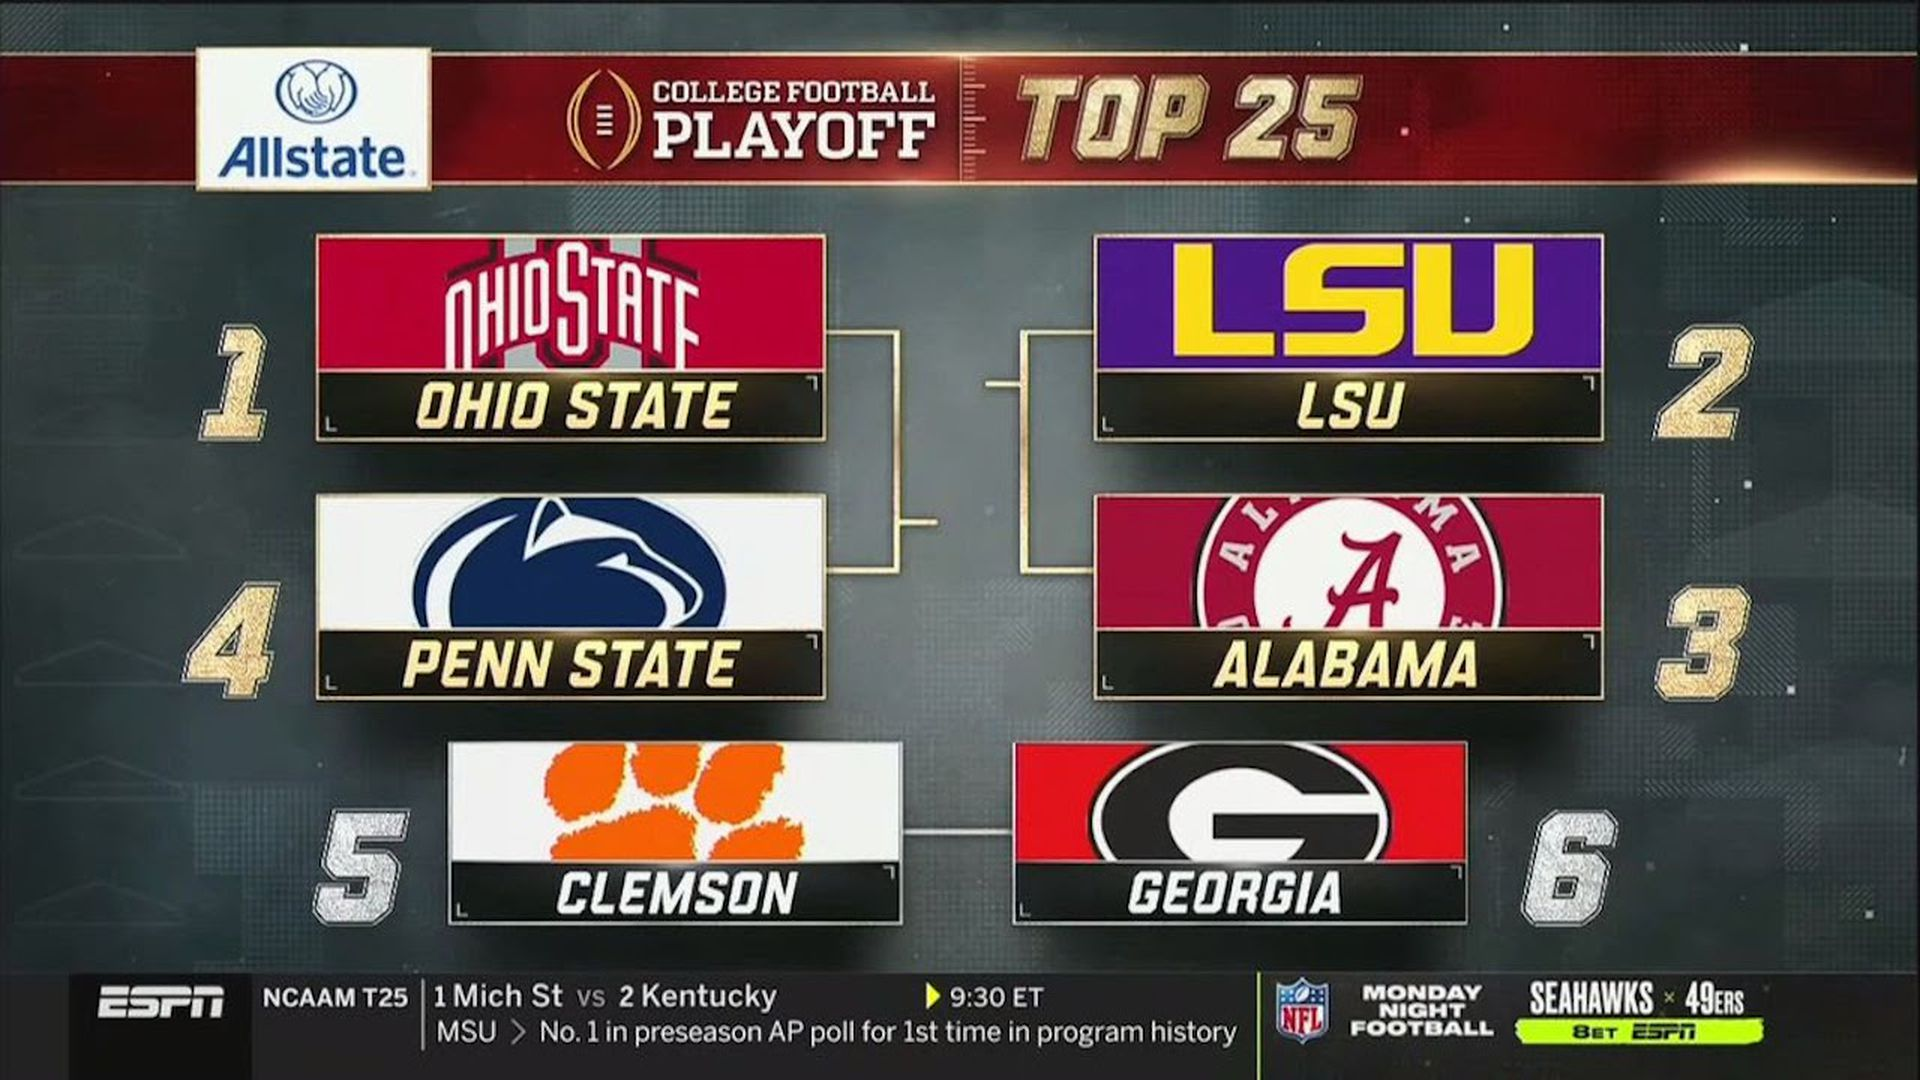 Ohio State Tops The First College Football Playoff Rankings